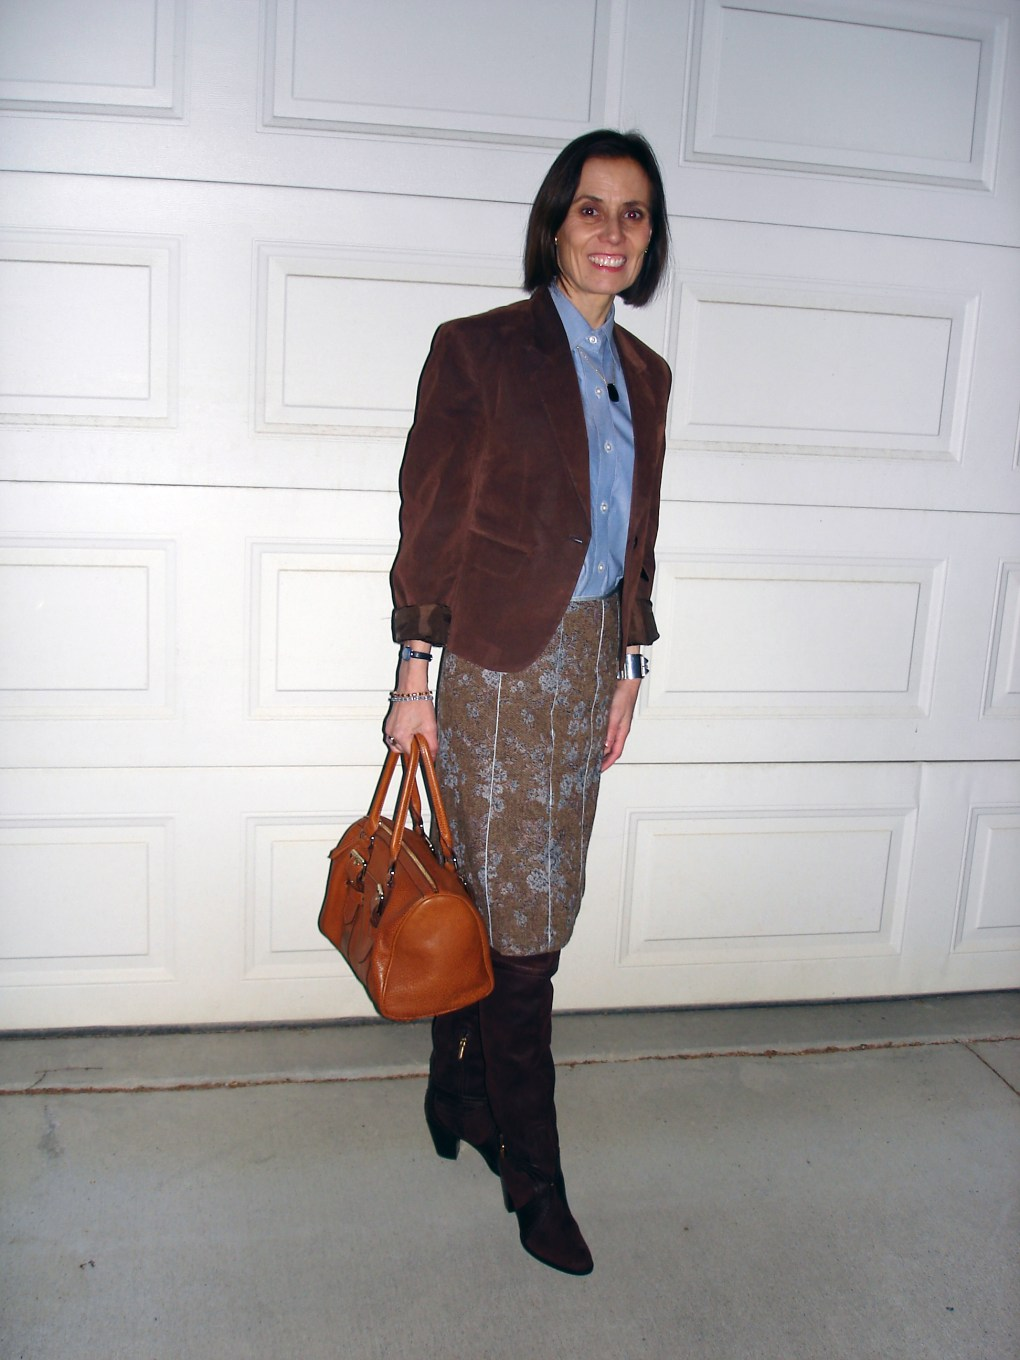 style over 40 woman in a tweed skirt with button-down shirt and suede blazer for a winter office look